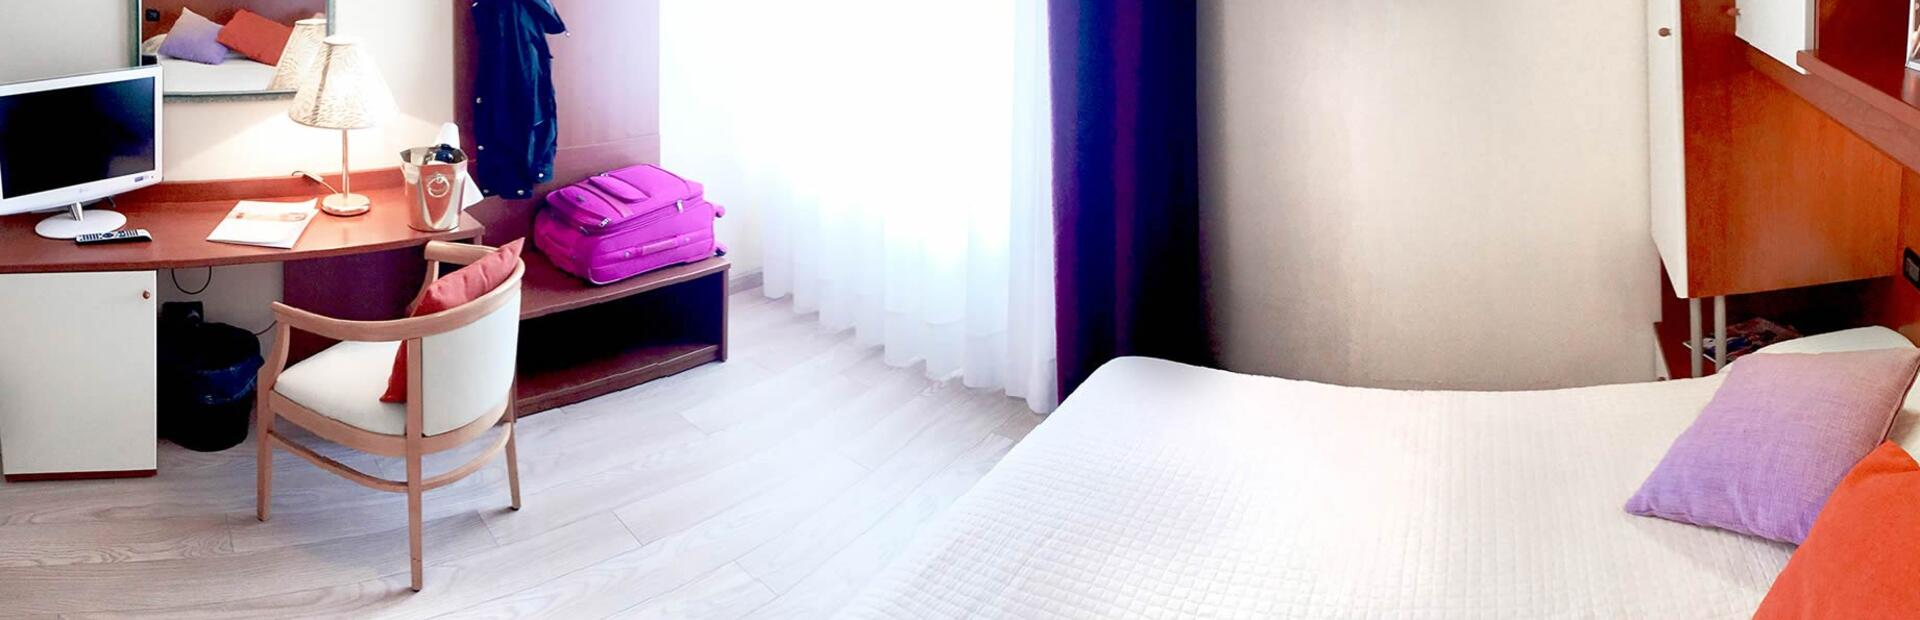 hotel-sole it camere 001